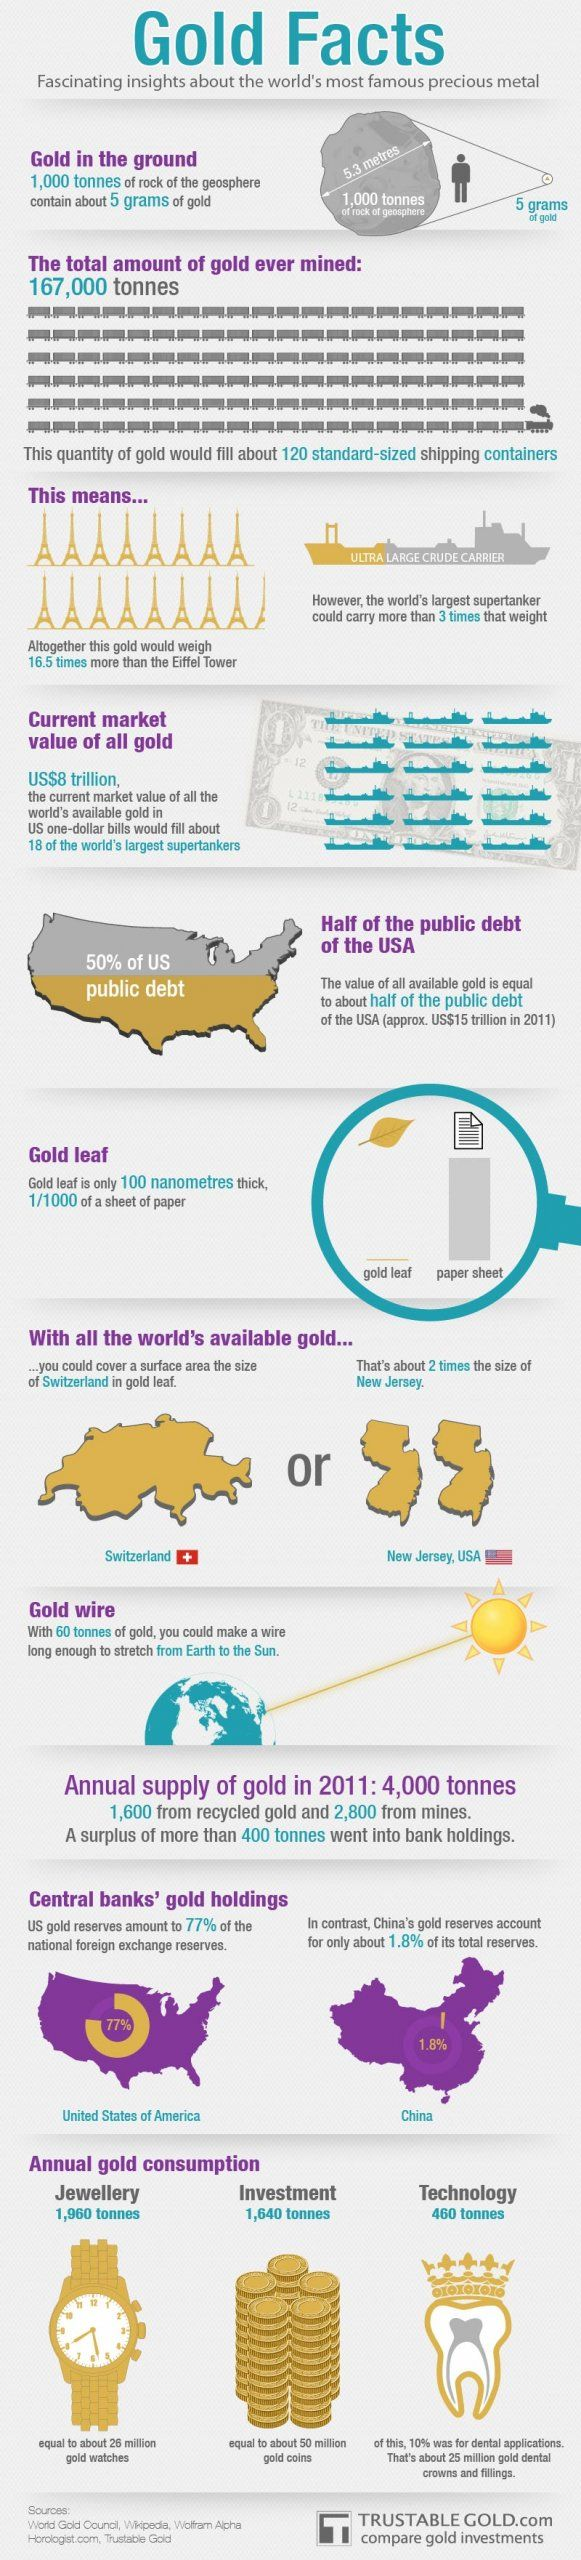 Infographic: All of the Gold in the World http://www.goldcards4sale.com/